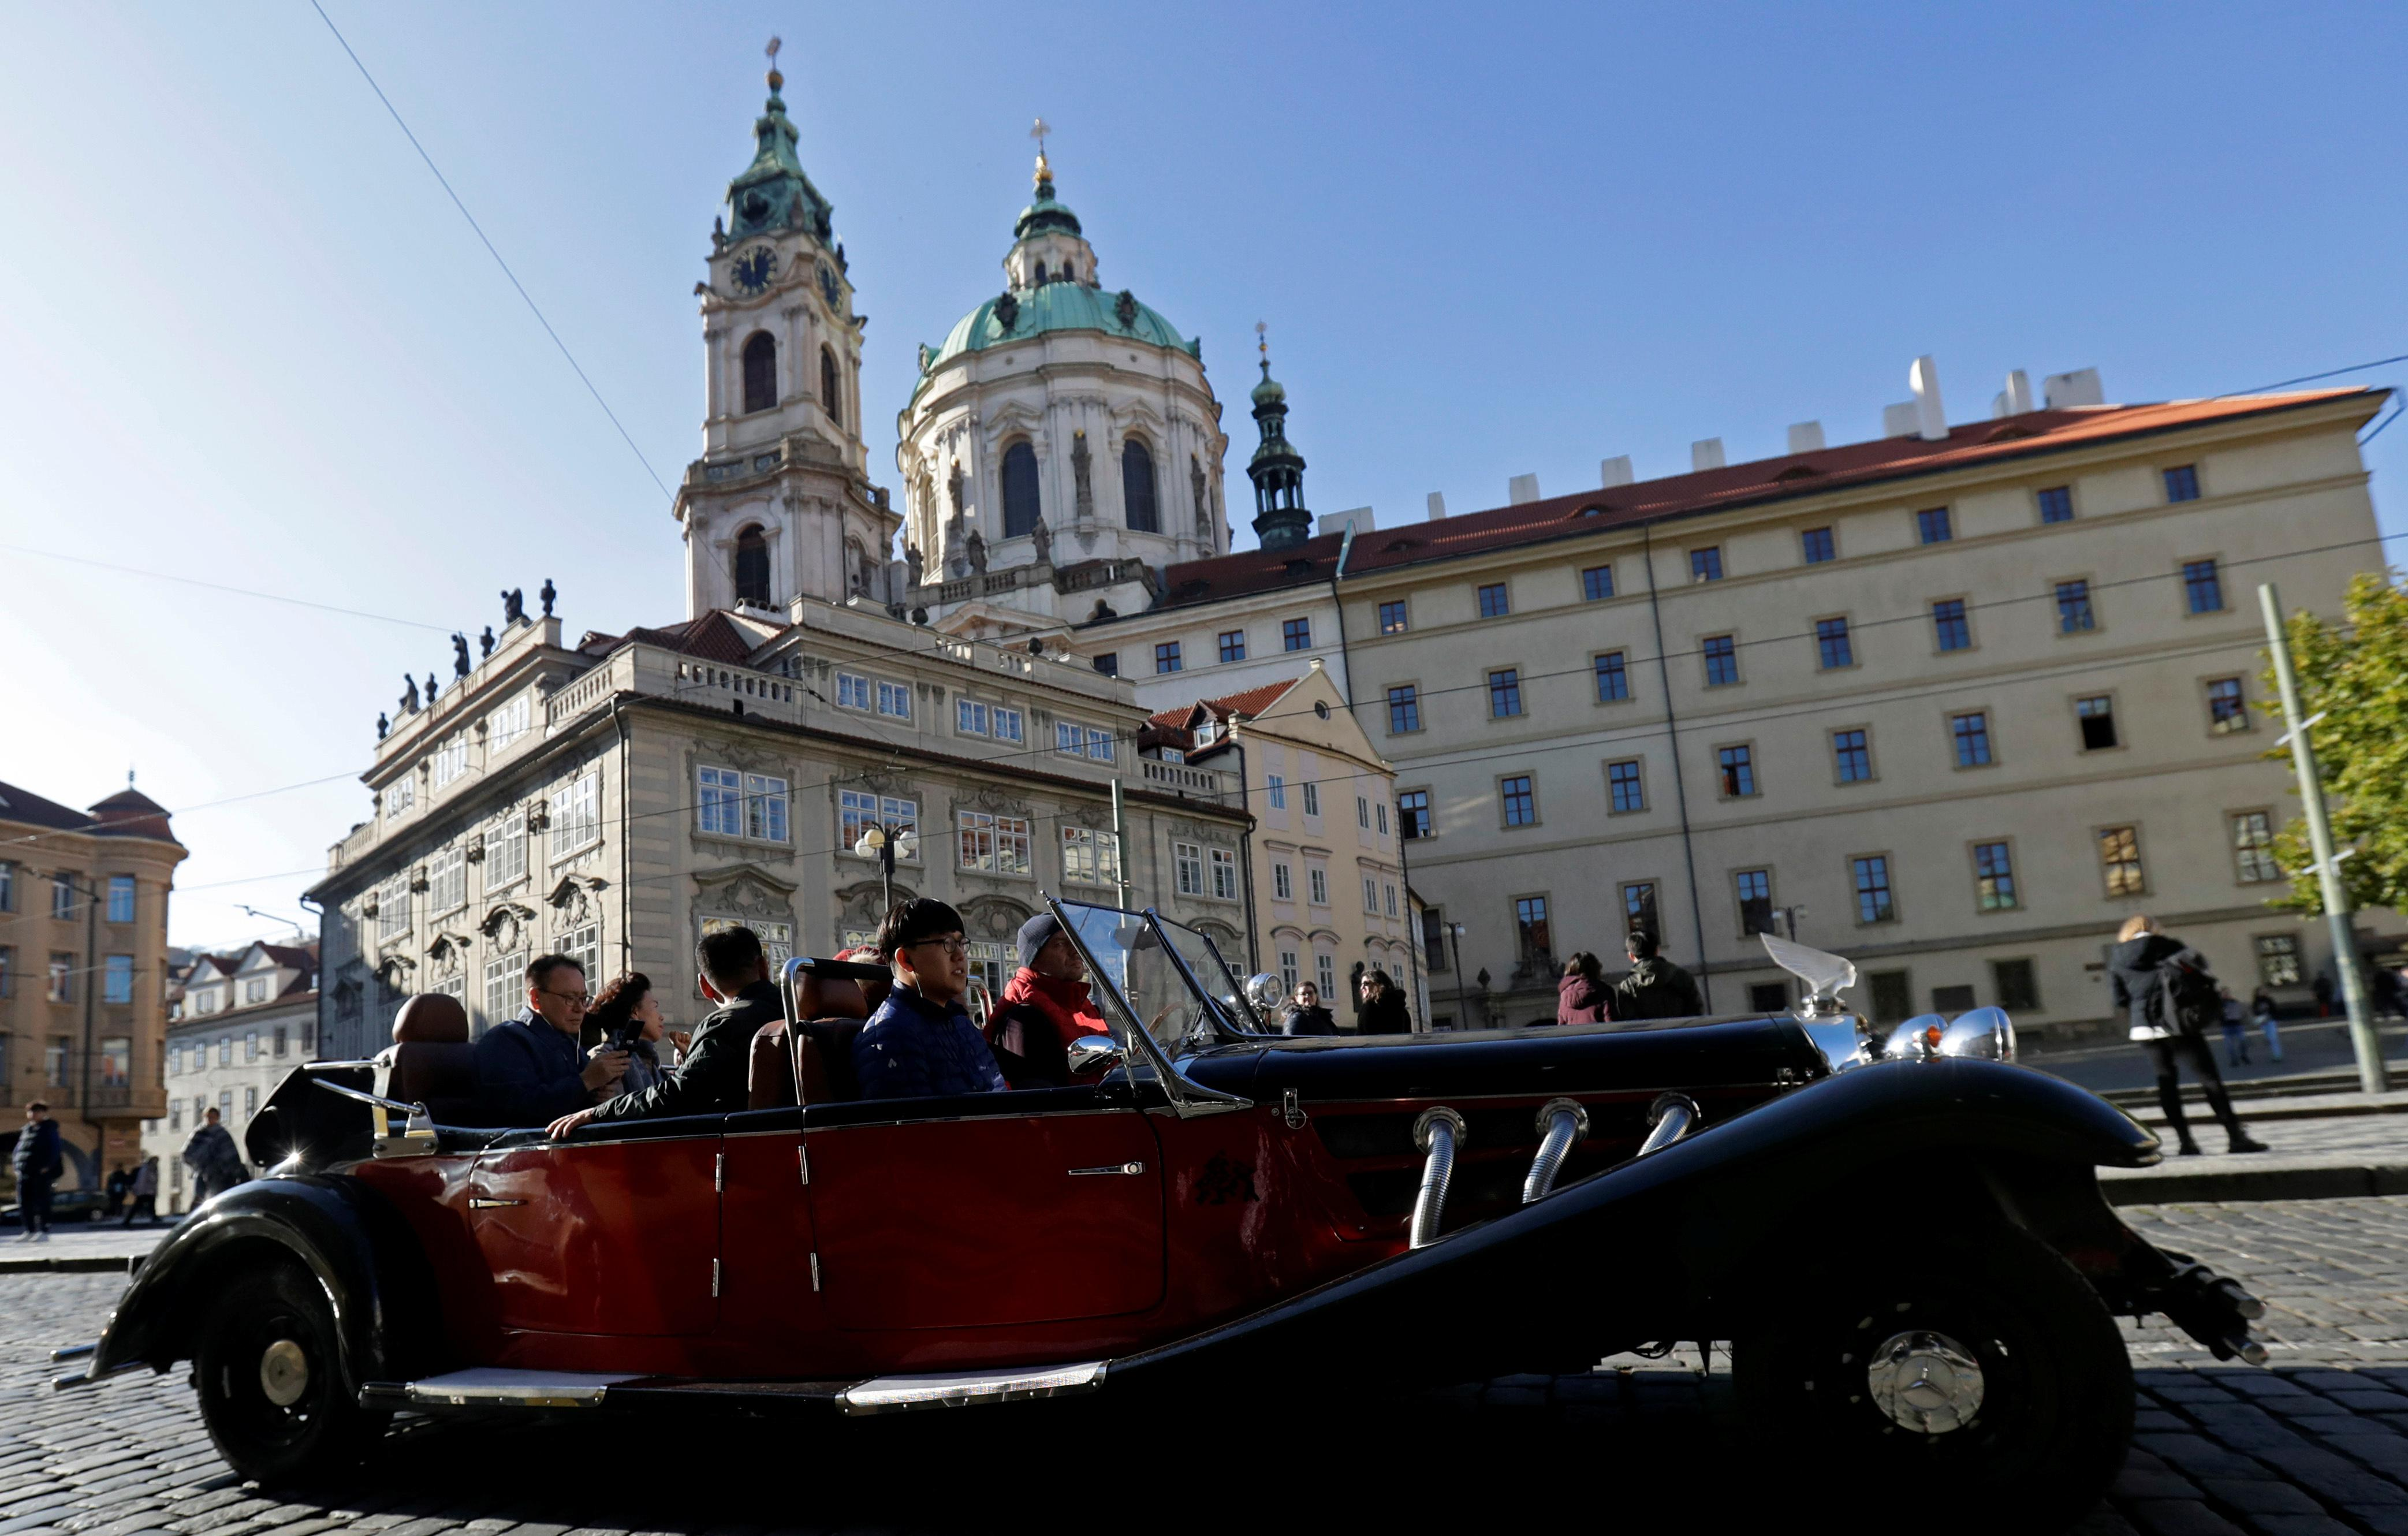 Prague locals tire of tourists, 30 years after end of Communism